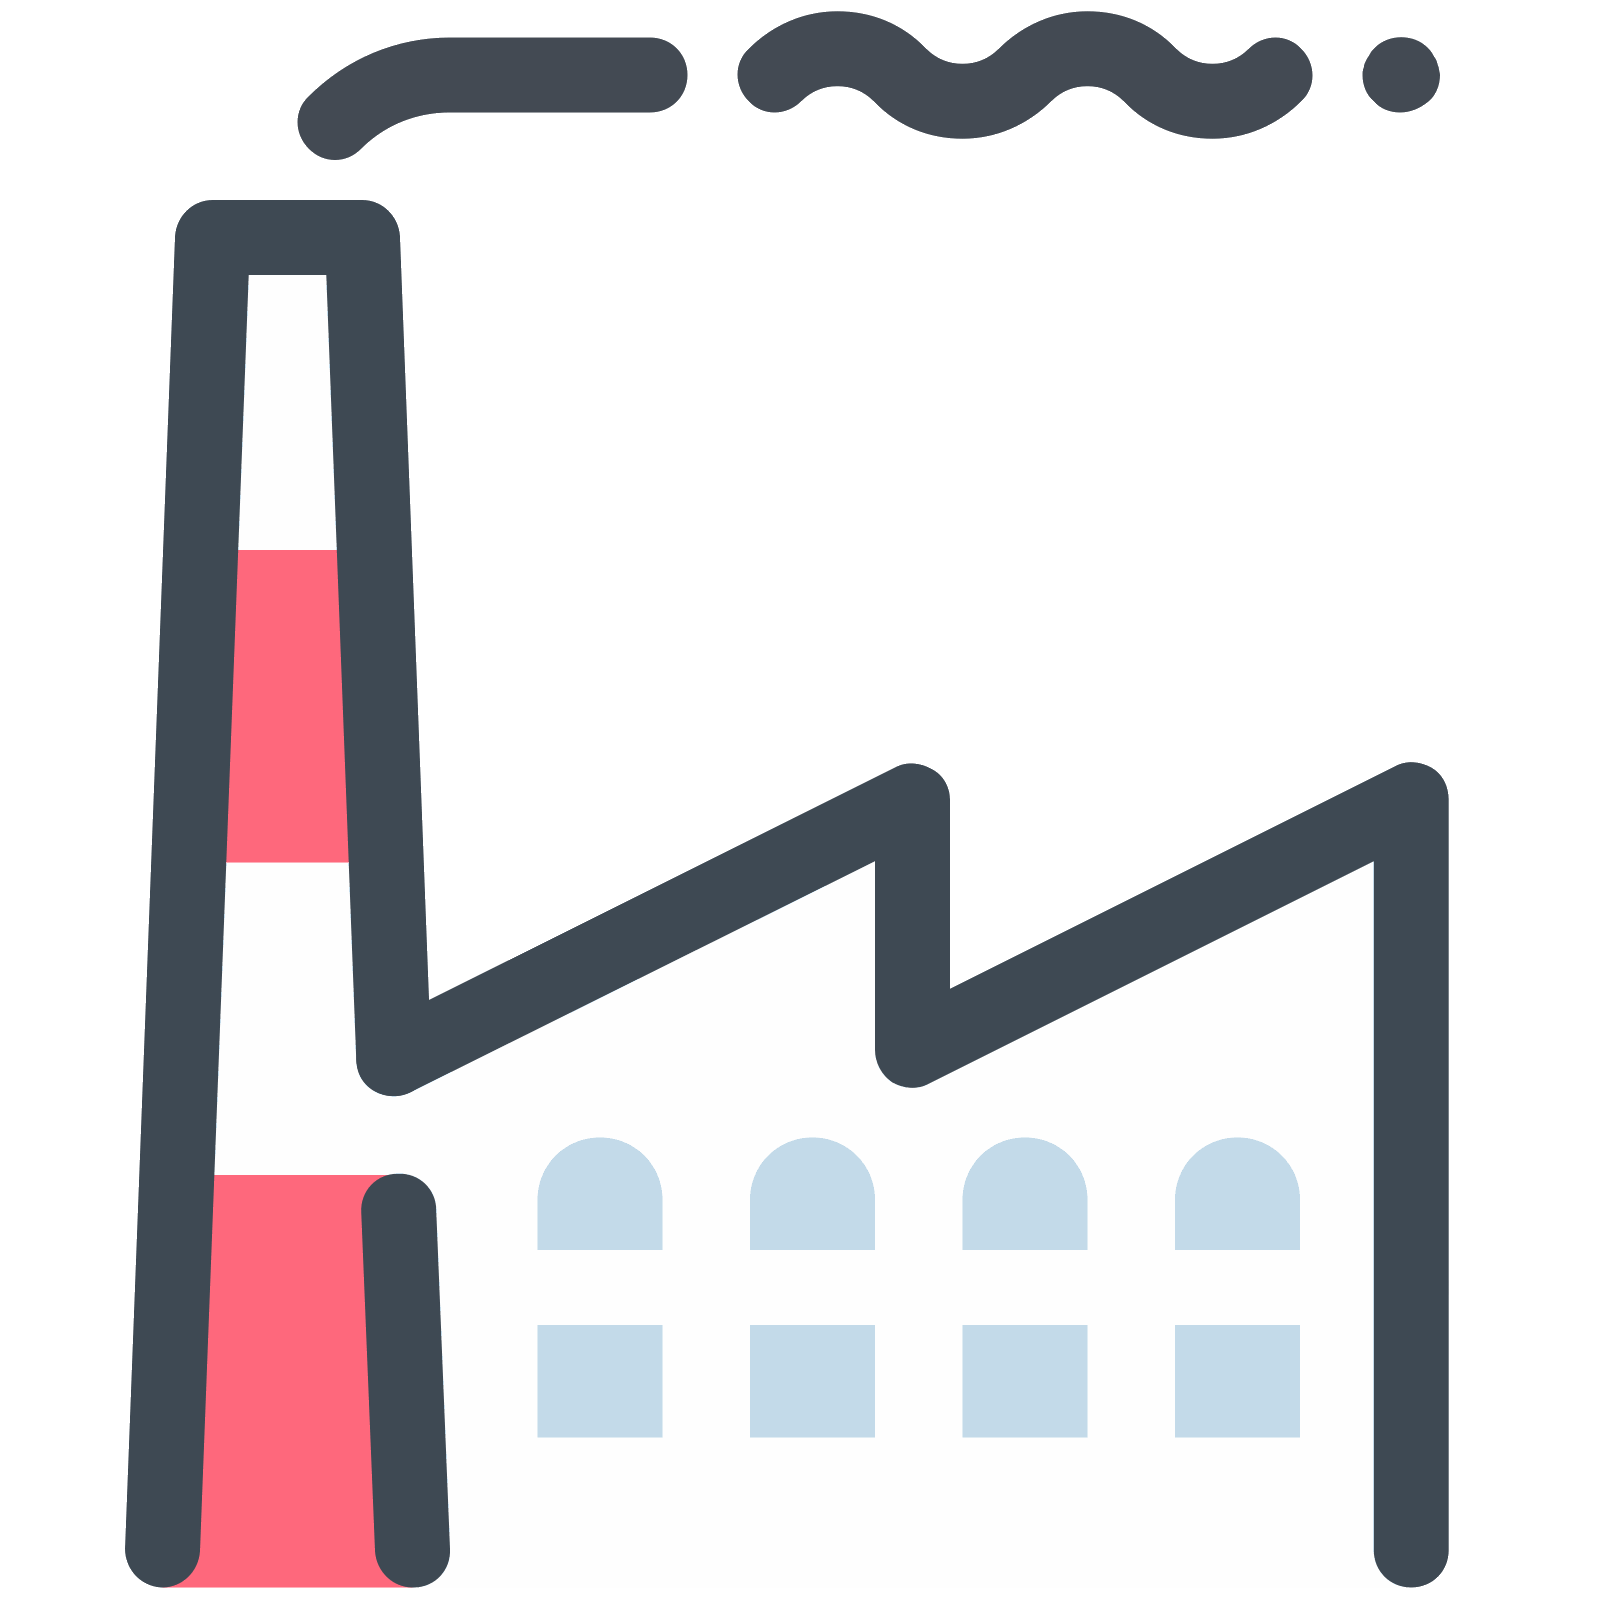 Factory icon free download. Factories clipart industry profile